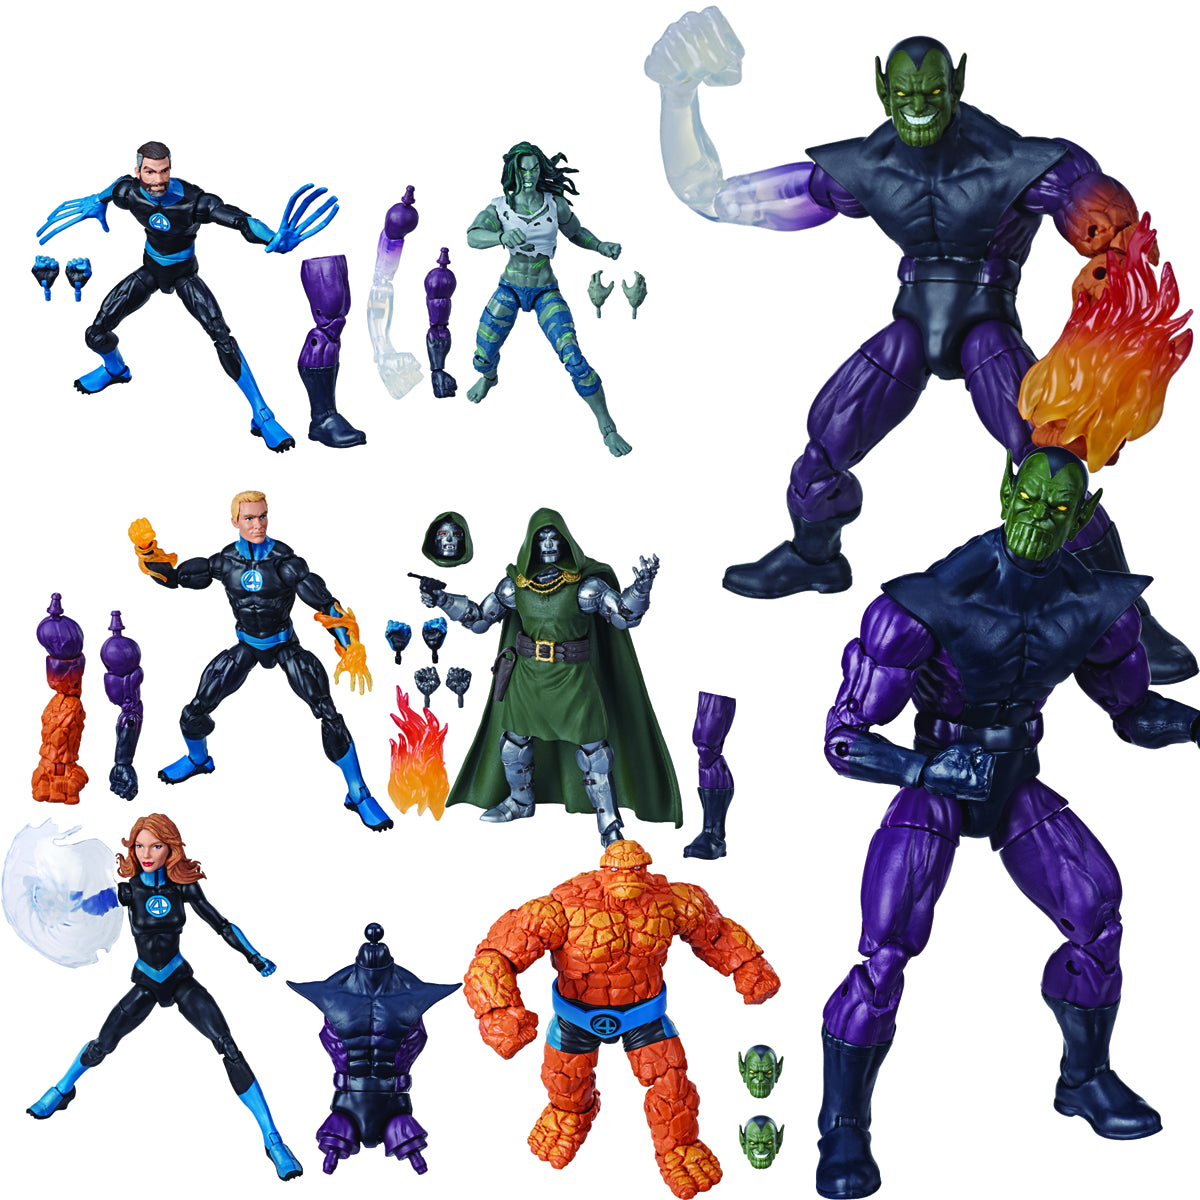 FANTASTIC FOUR LEGENDS 6IN AF ASST 202001 (NET) (C: 1-1-2)